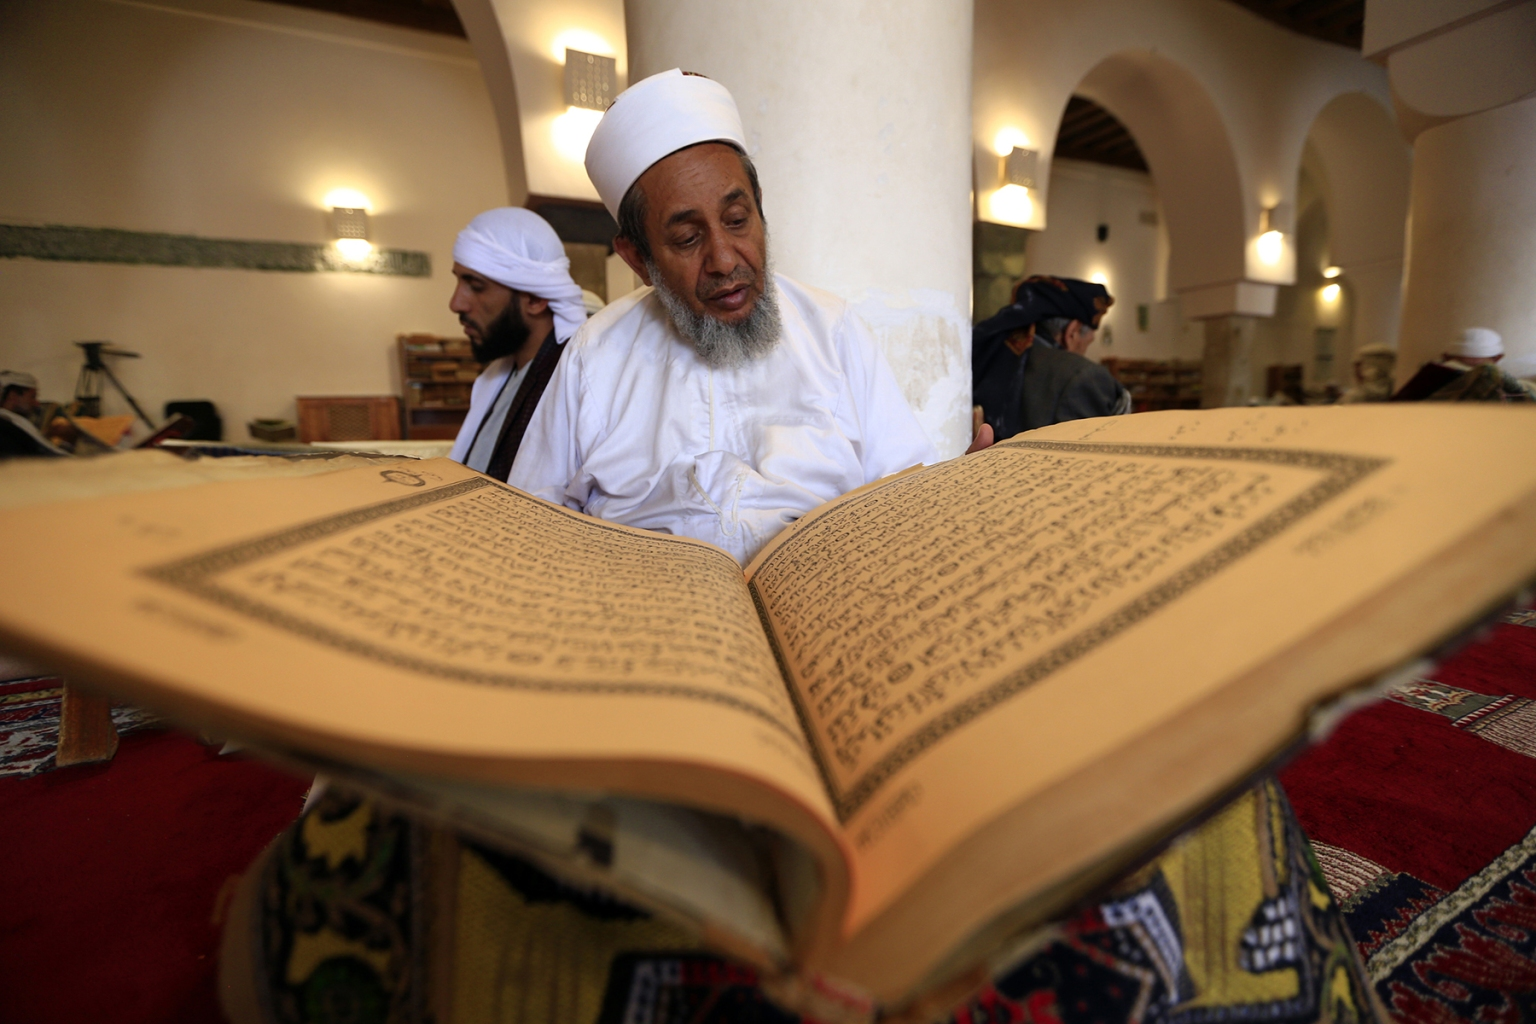 A Yemeni man reads the Quran at the Great Mosque in the old city of the capital Sanaa during Ramadan on May 9. MOHAMMED HUWAIS/AFP/Getty Images